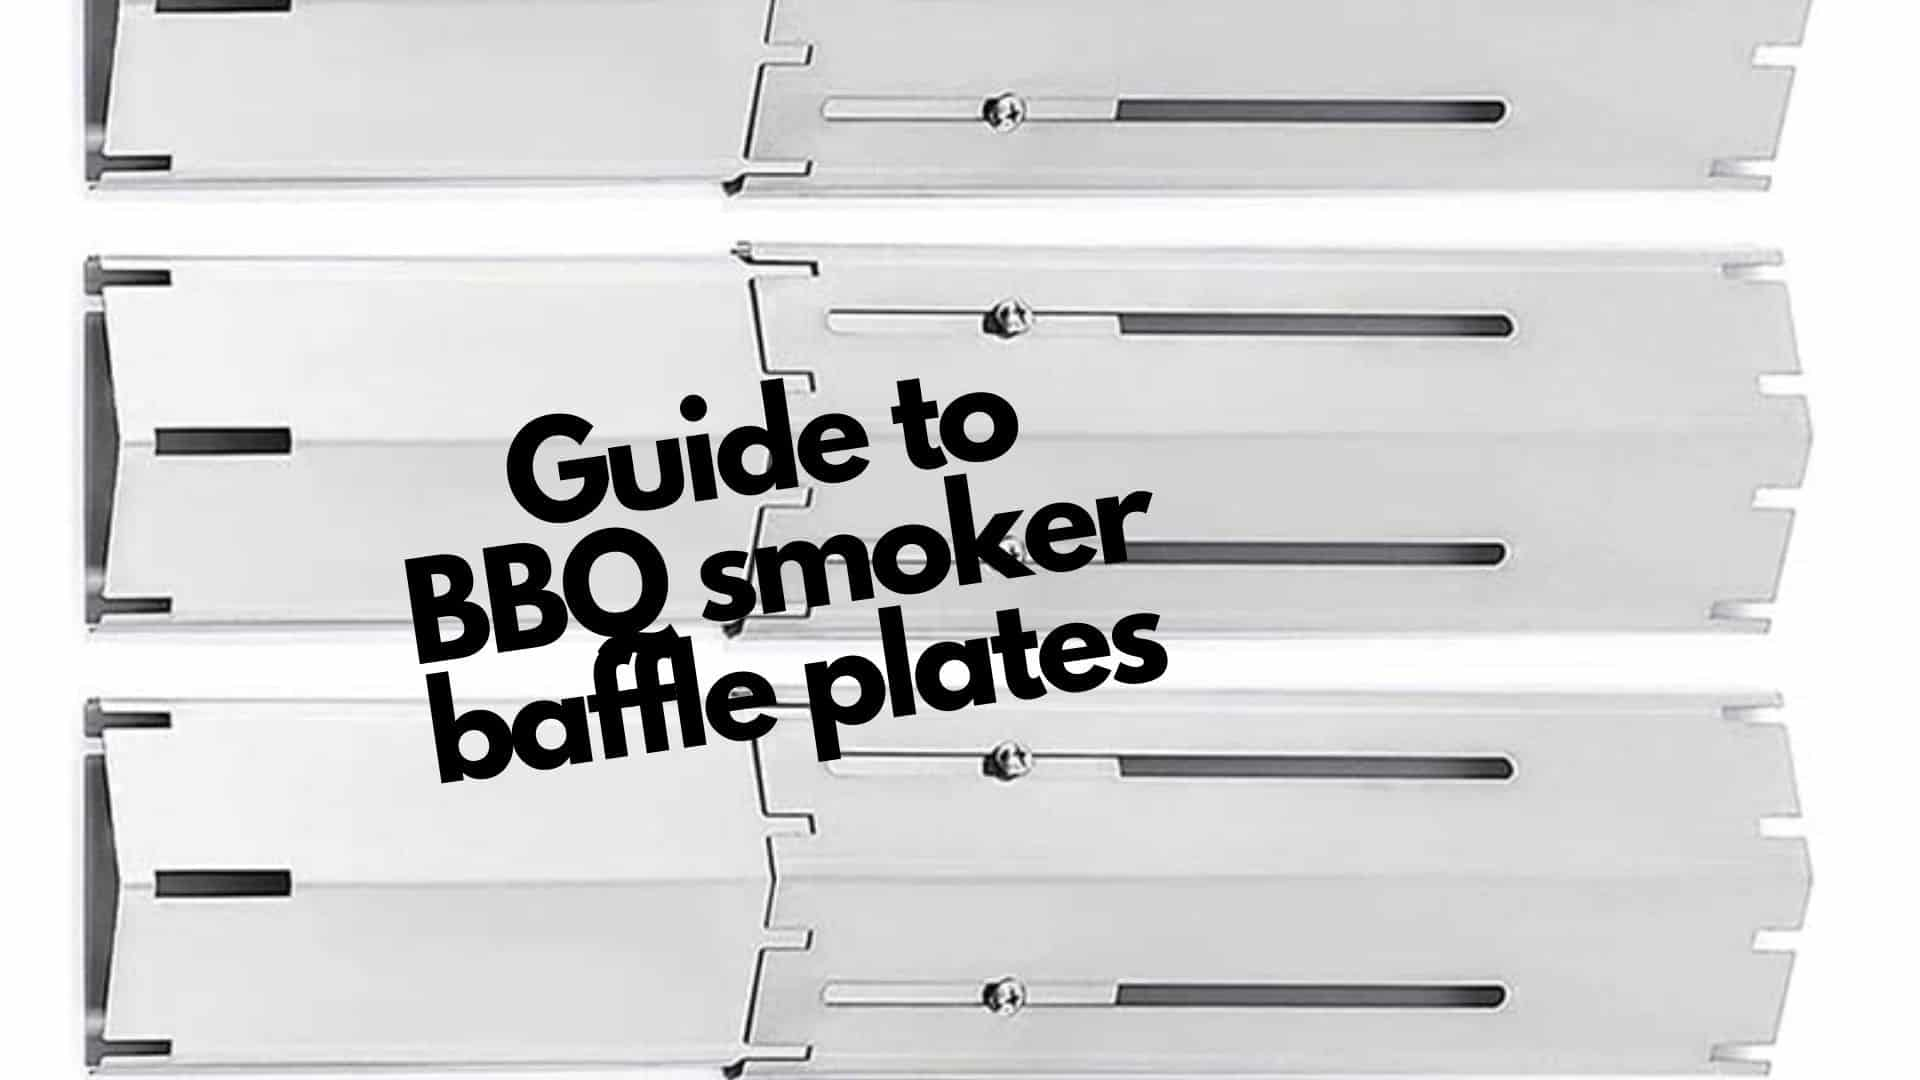 Complete guide on BBQ smoker baffle plates | Help & reviews